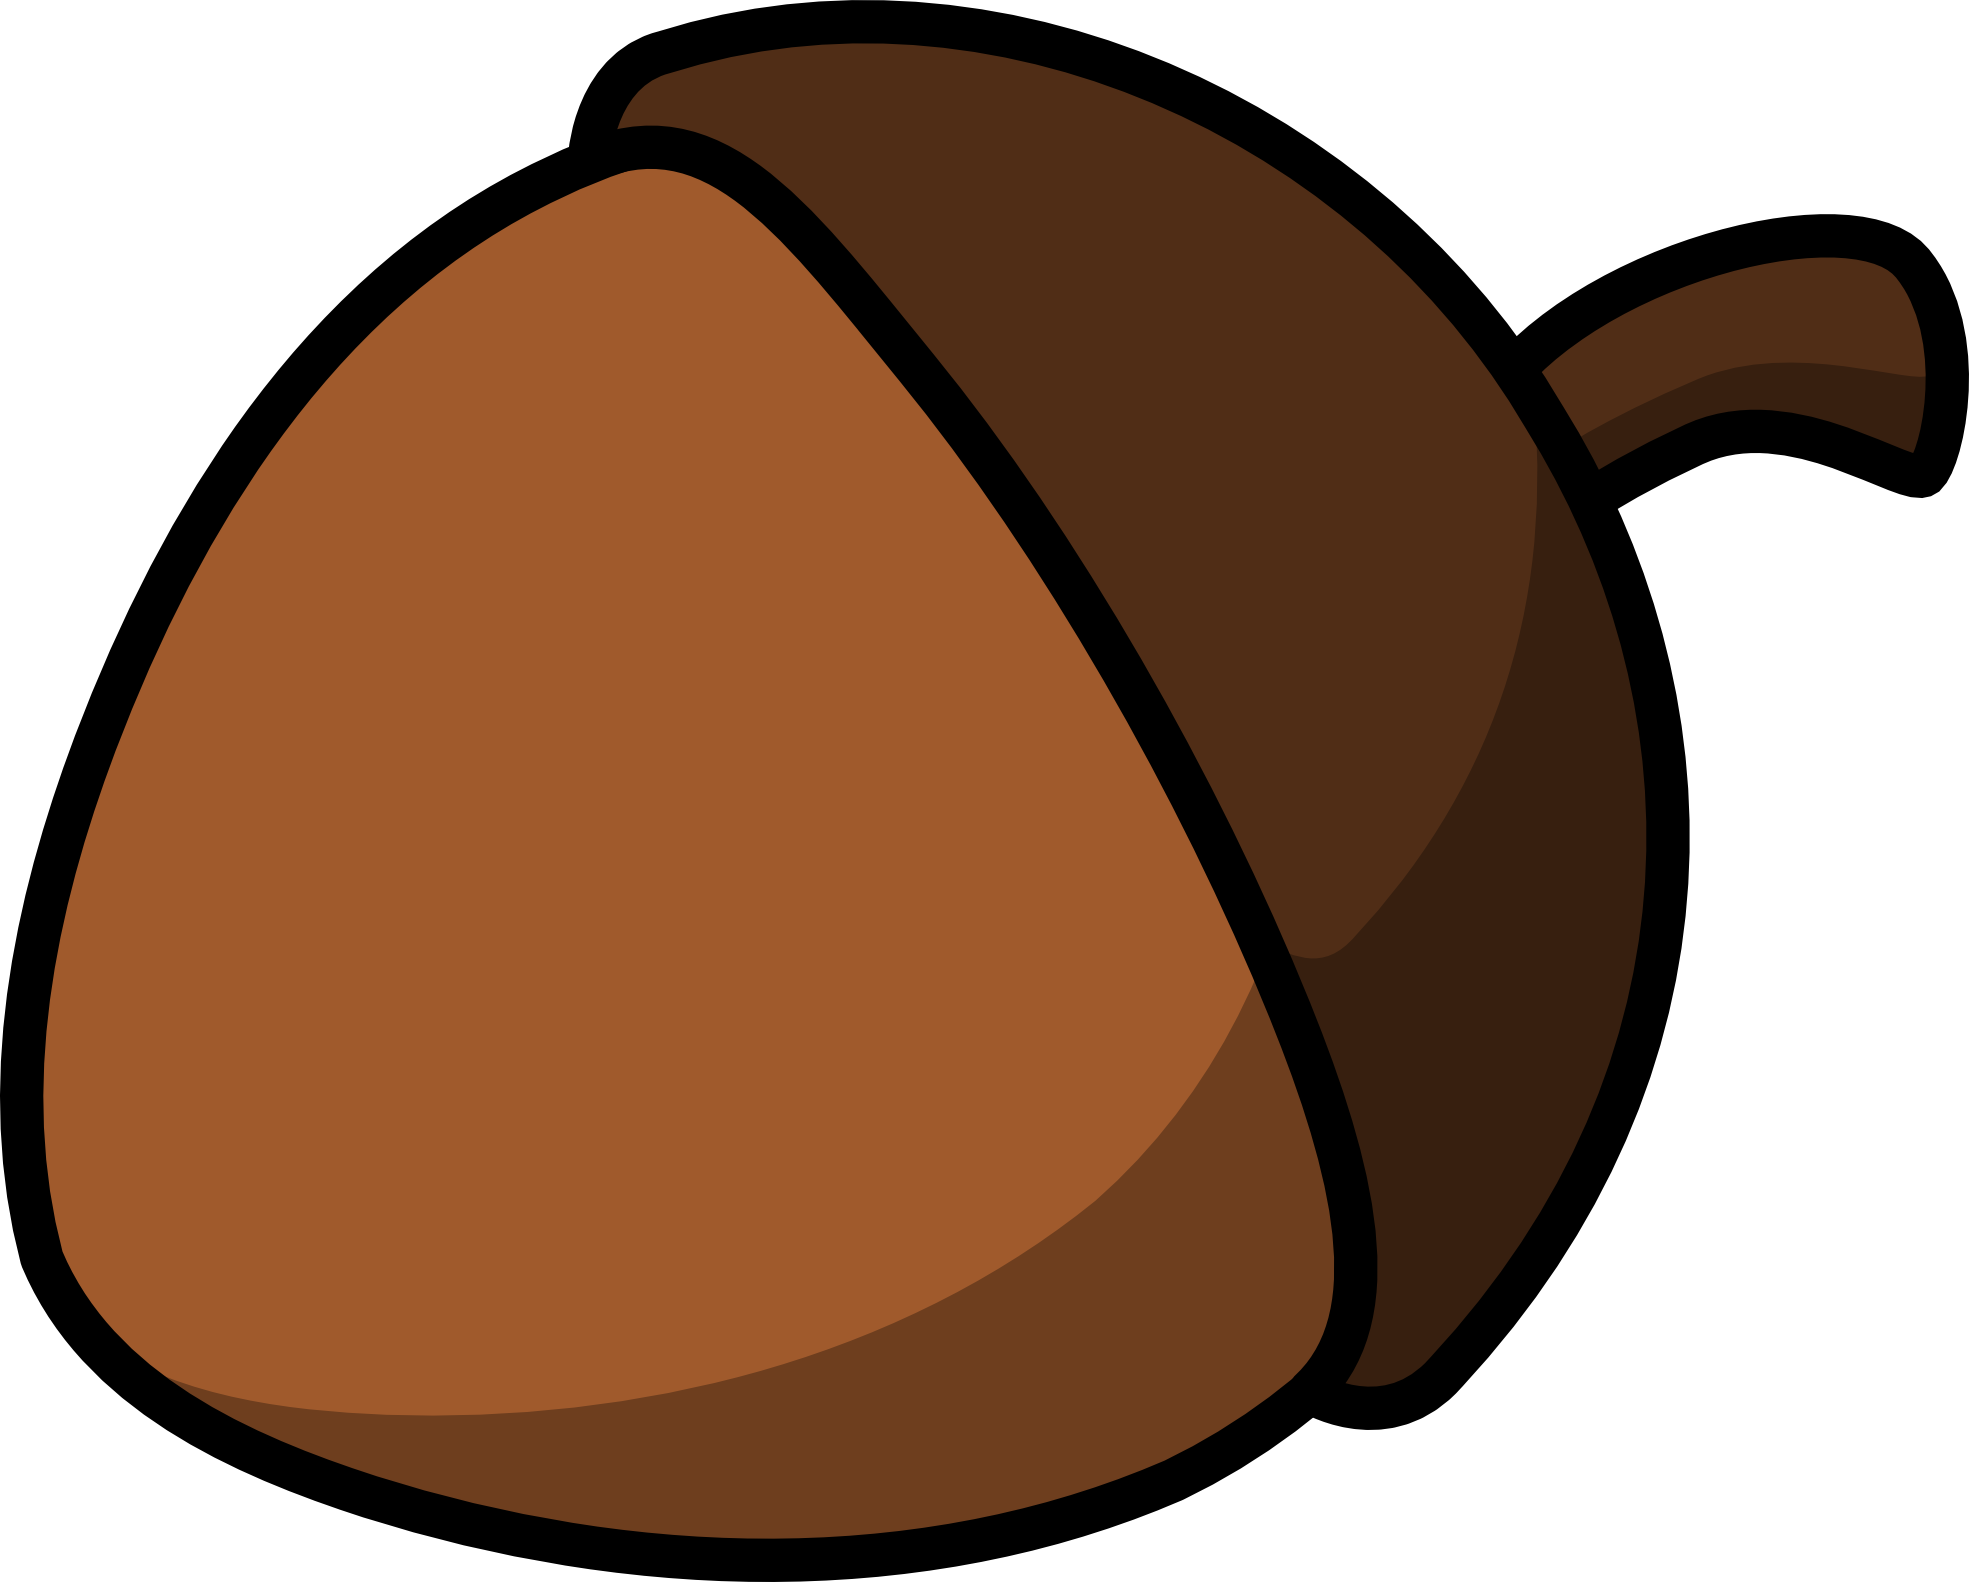 Acorn clipart #15, Download drawings